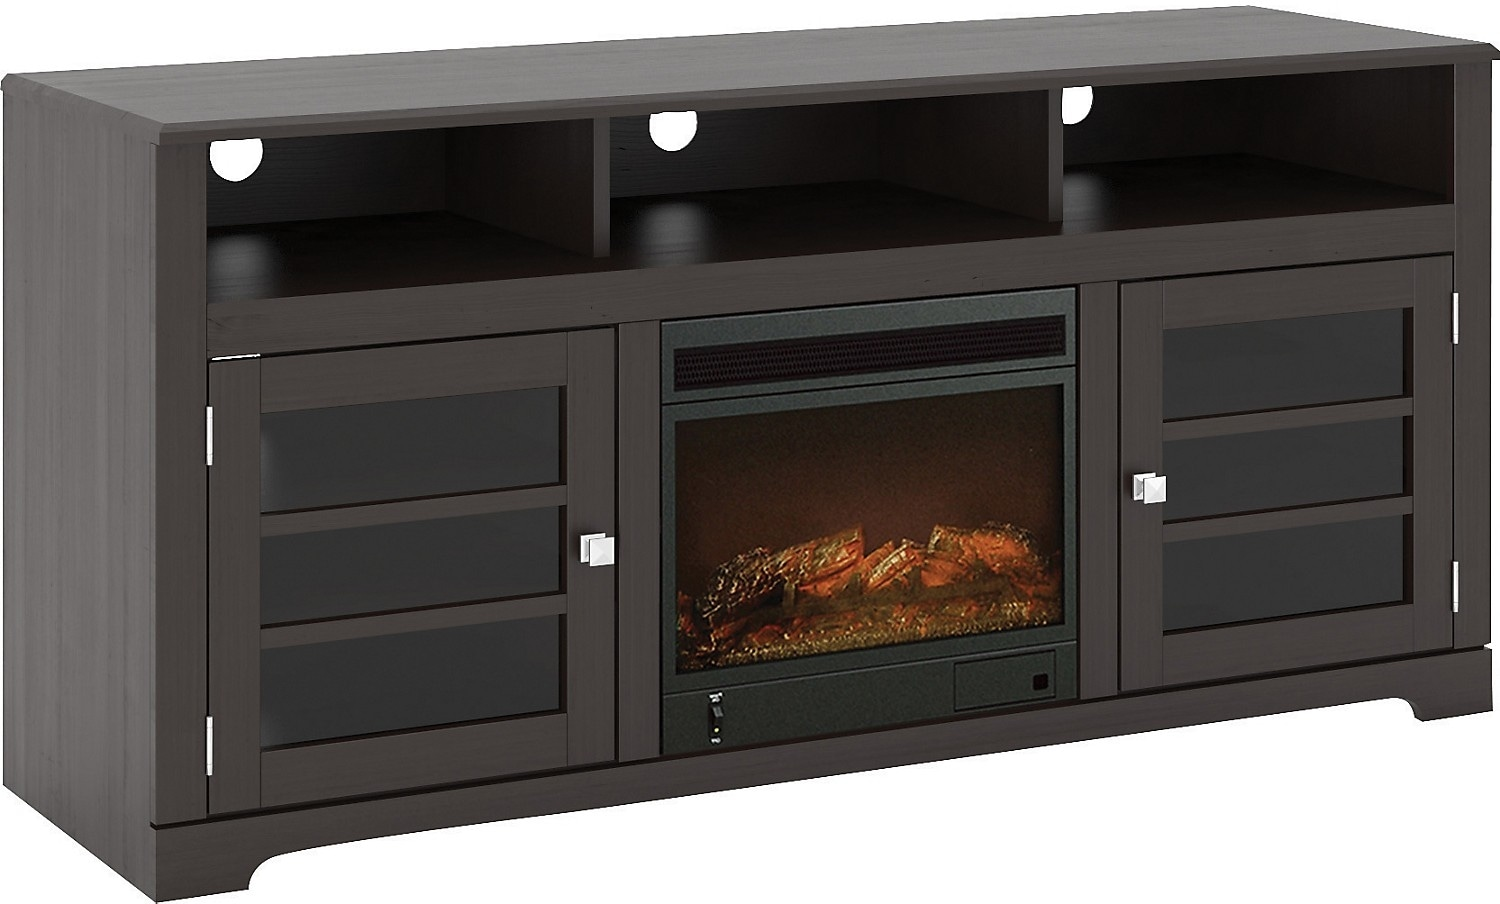 "West Lake 60"" TV Stand with Log Firebox – Mocha Black"